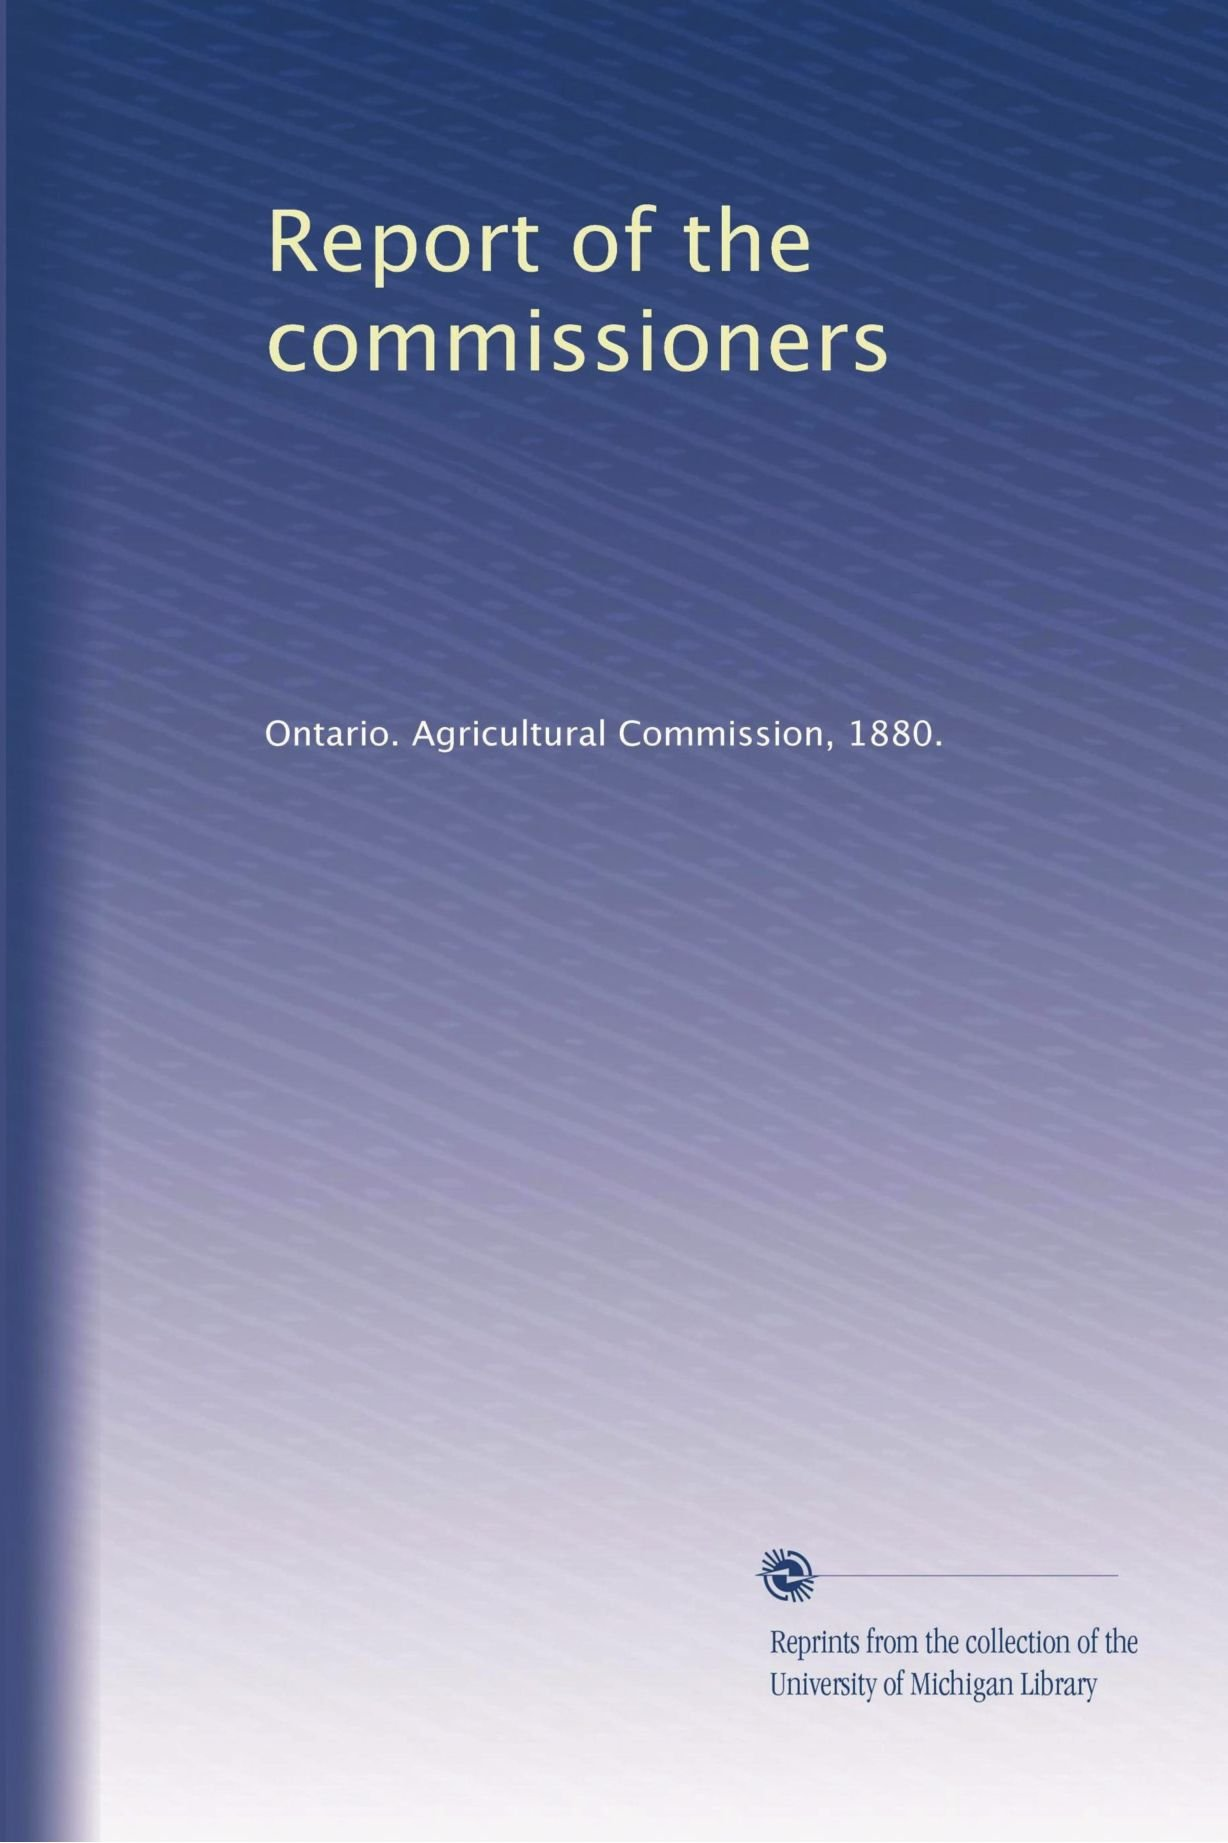 Download Report of the commissioners ebook